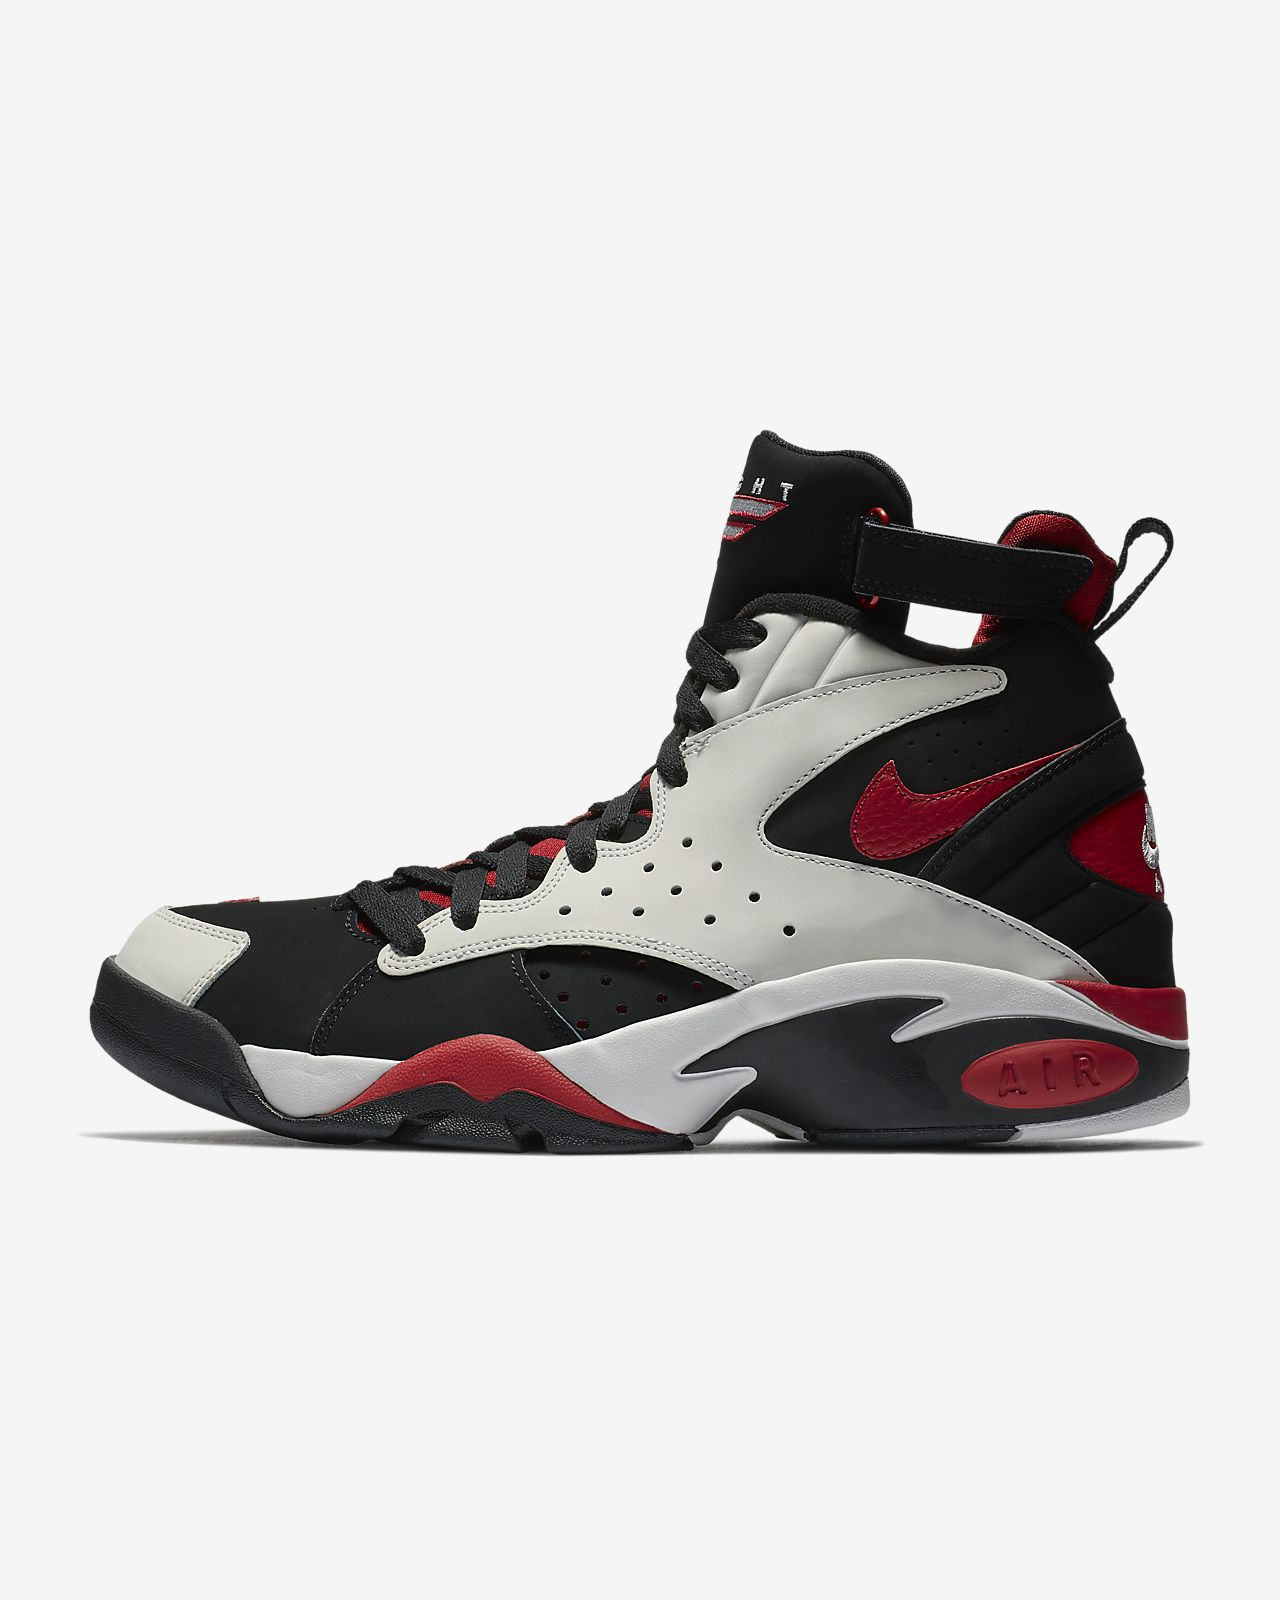 quality design db0e5 a85ab ... Nike Air Maestro II LTD Mens Shoe